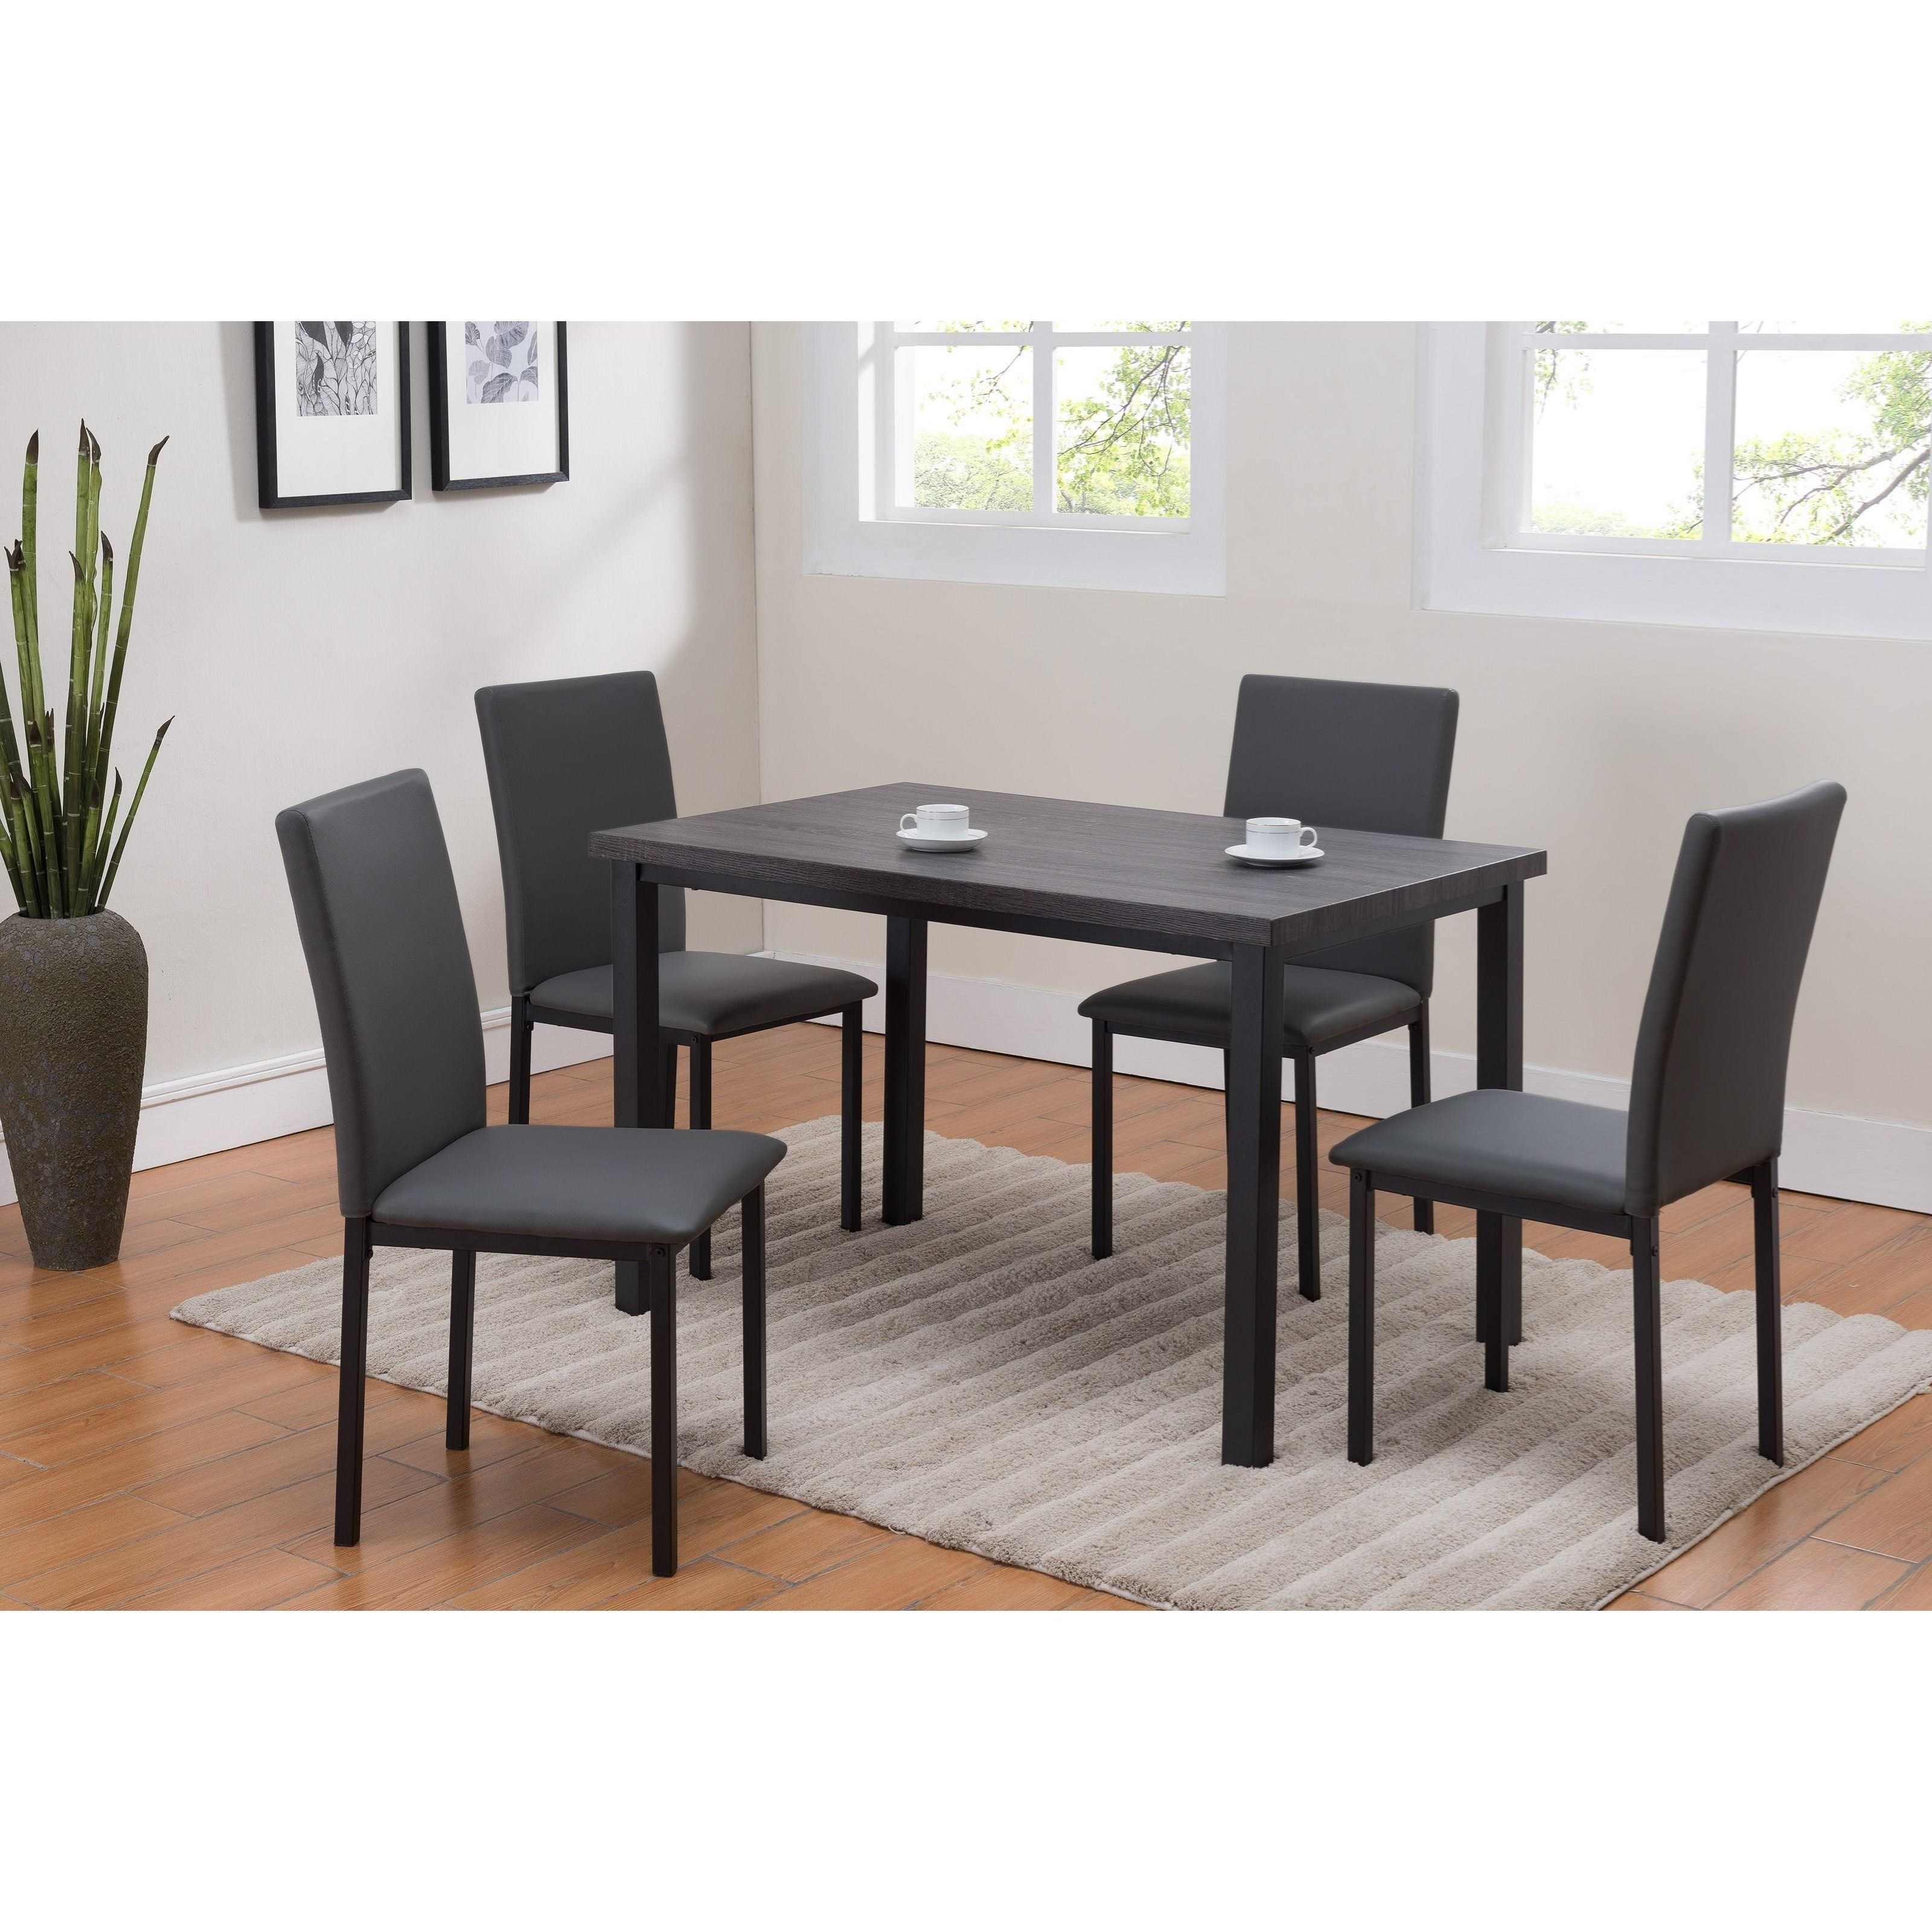 Casual 5 Piece Dinette with Table and Upholstered Chairs